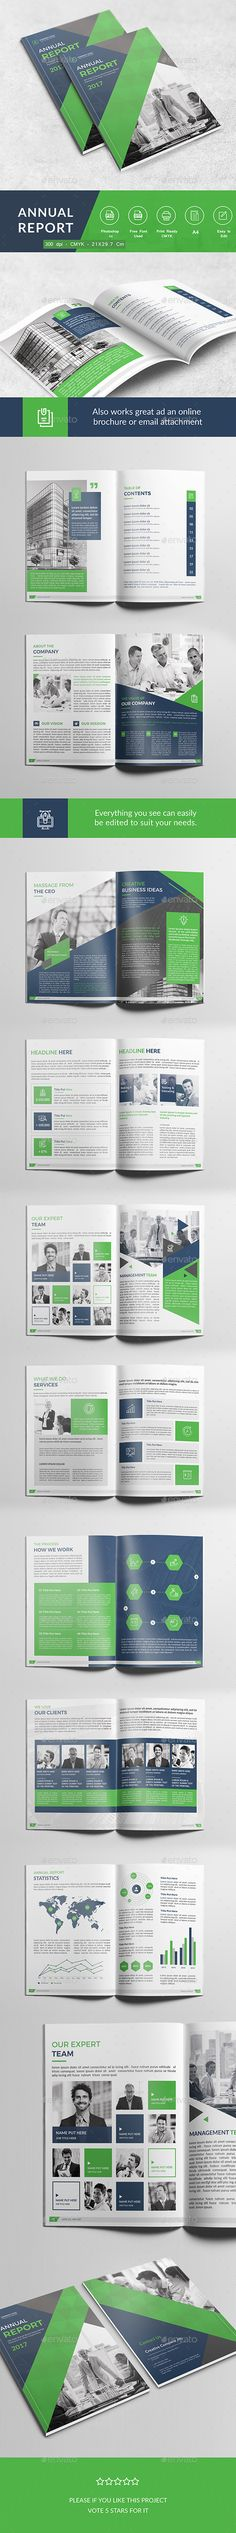 Annual Report  — PSD Template #summary #corporate • Download ➝ https://graphicriver.net/item/annual-report/18470727?ref=pxcr